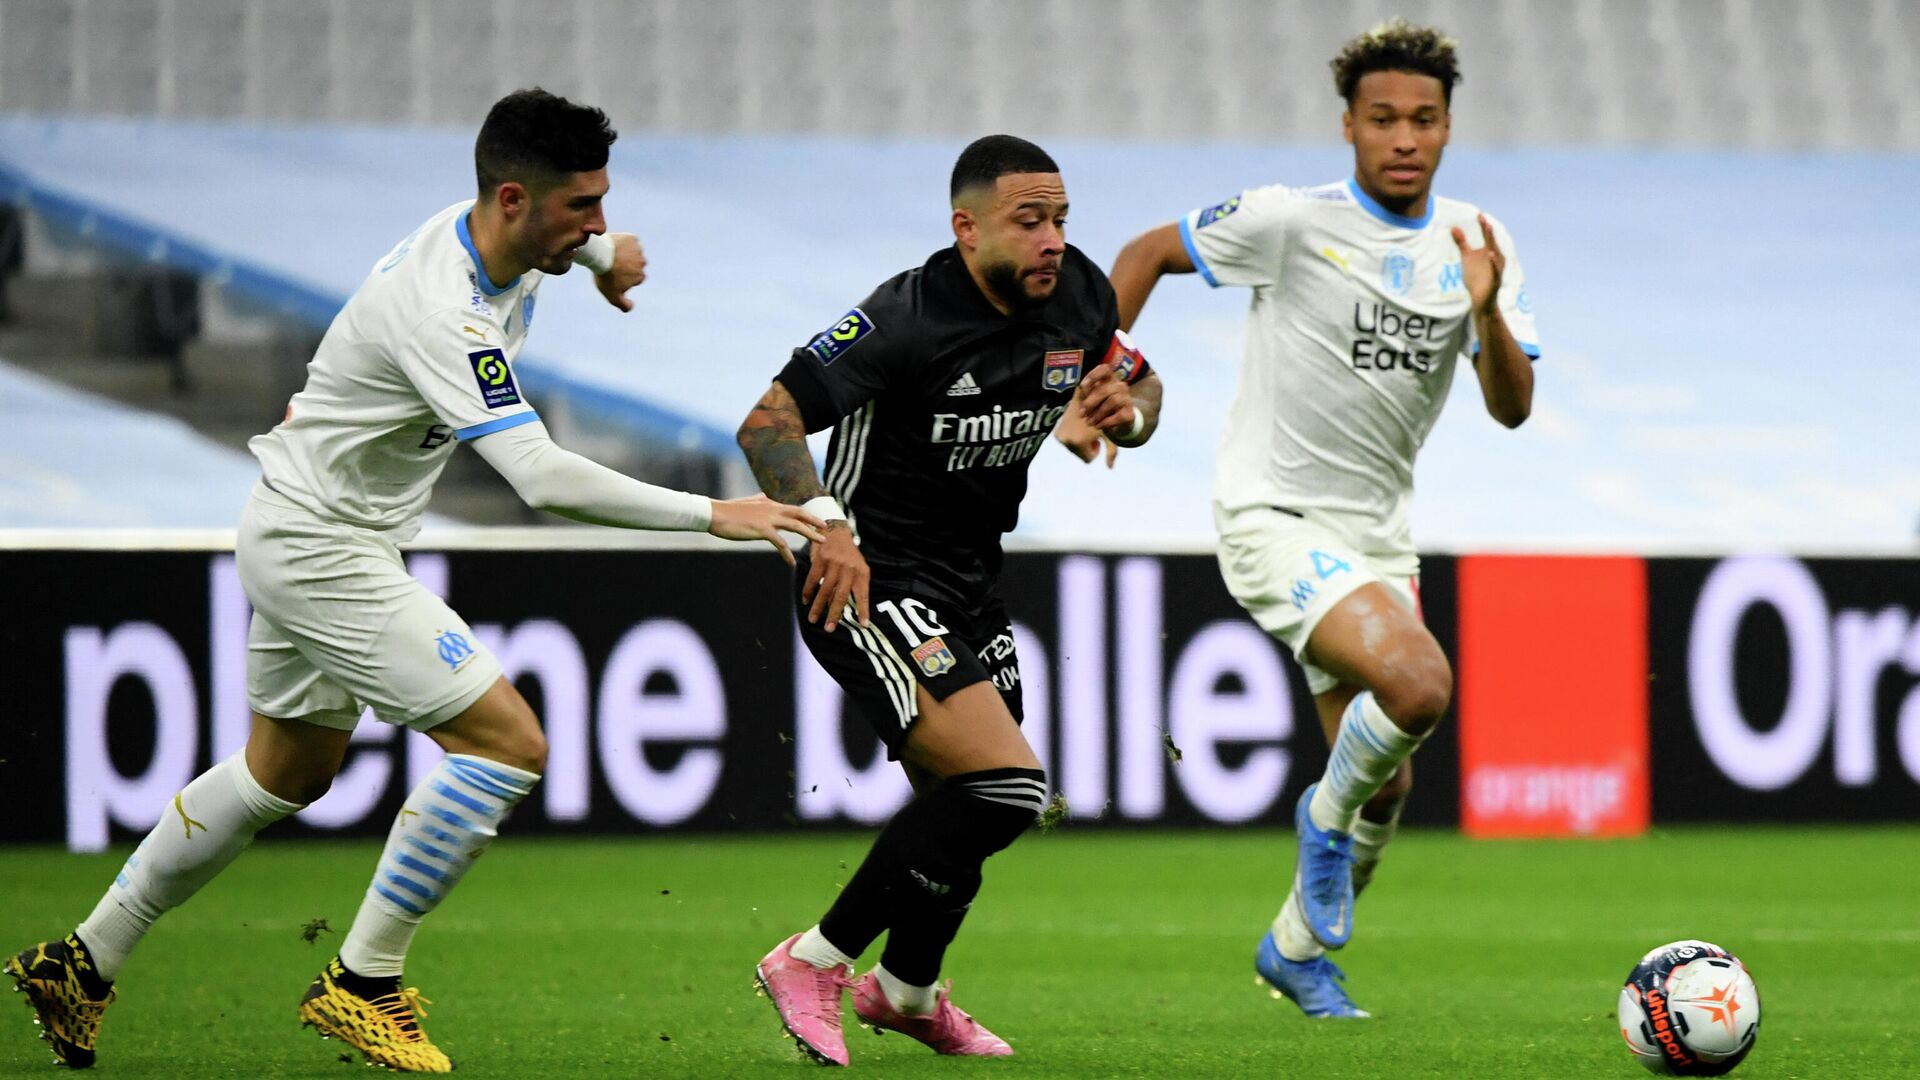 Lyon's Dutch forward Memphis Depay (C) fights for the ball during the French L1 football match between Olympique de Marseille (OM) and Olympique Lyonnais (OL) at the Velodrome stadium in Marseille on February 28, 2021. (Photo by CLEMENT MAHOUDEAU / AFP) - РИА Новости, 1920, 01.03.2021